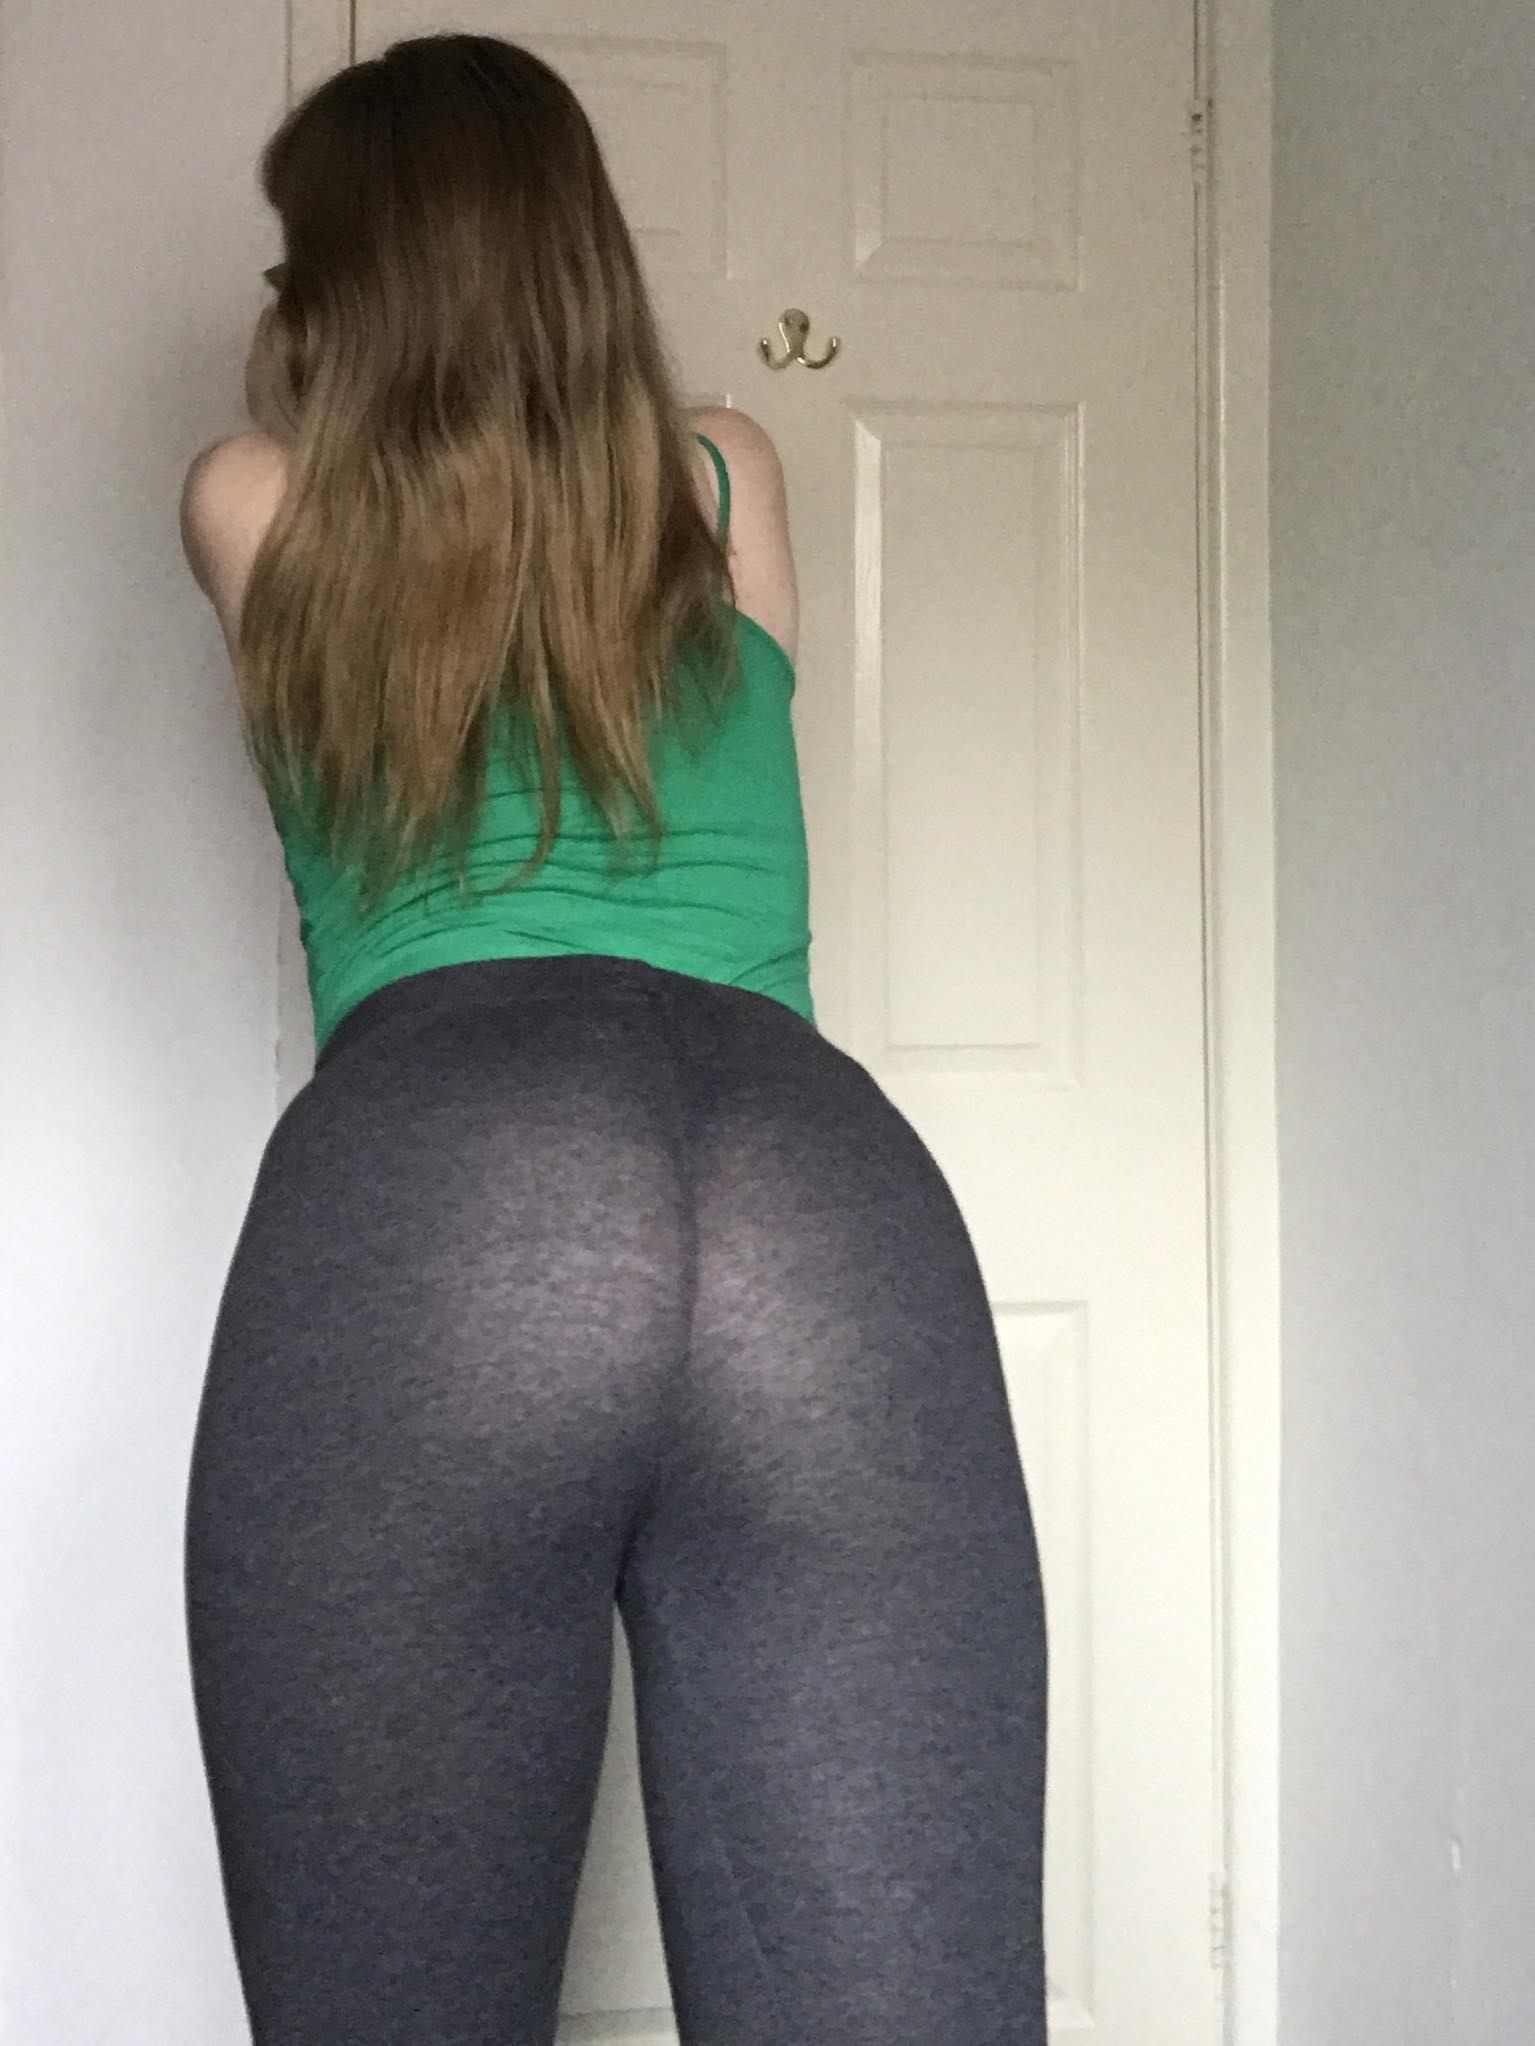 Teen Leggings Having Sex